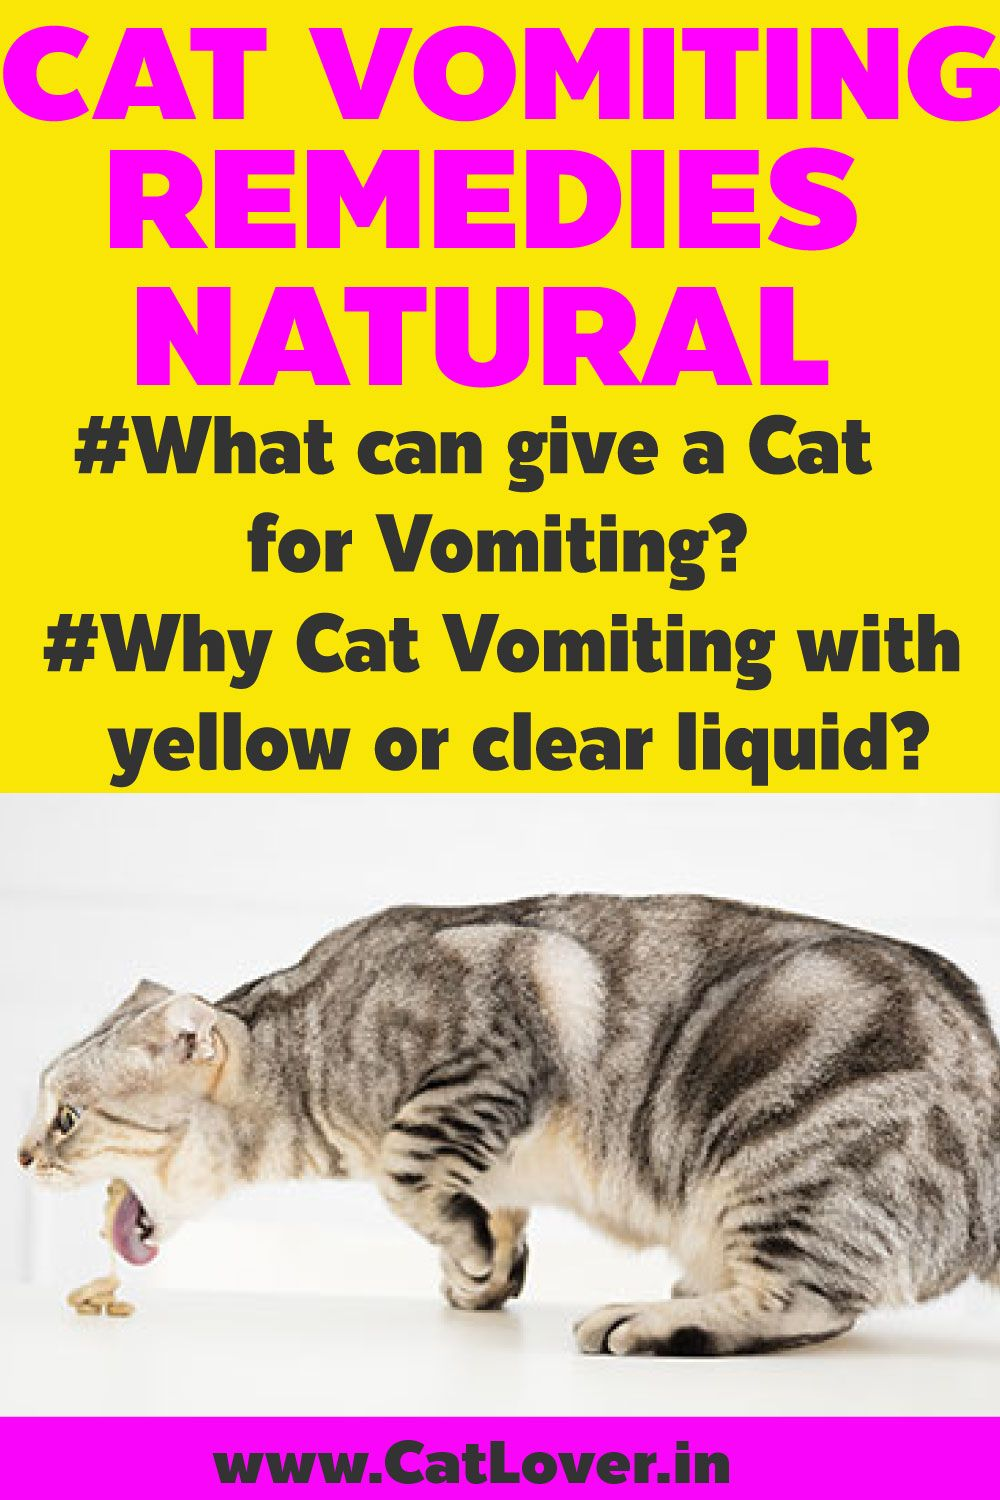 Q&A Cat/Kitten Vomiting Vomiting remedies, Cat remedies